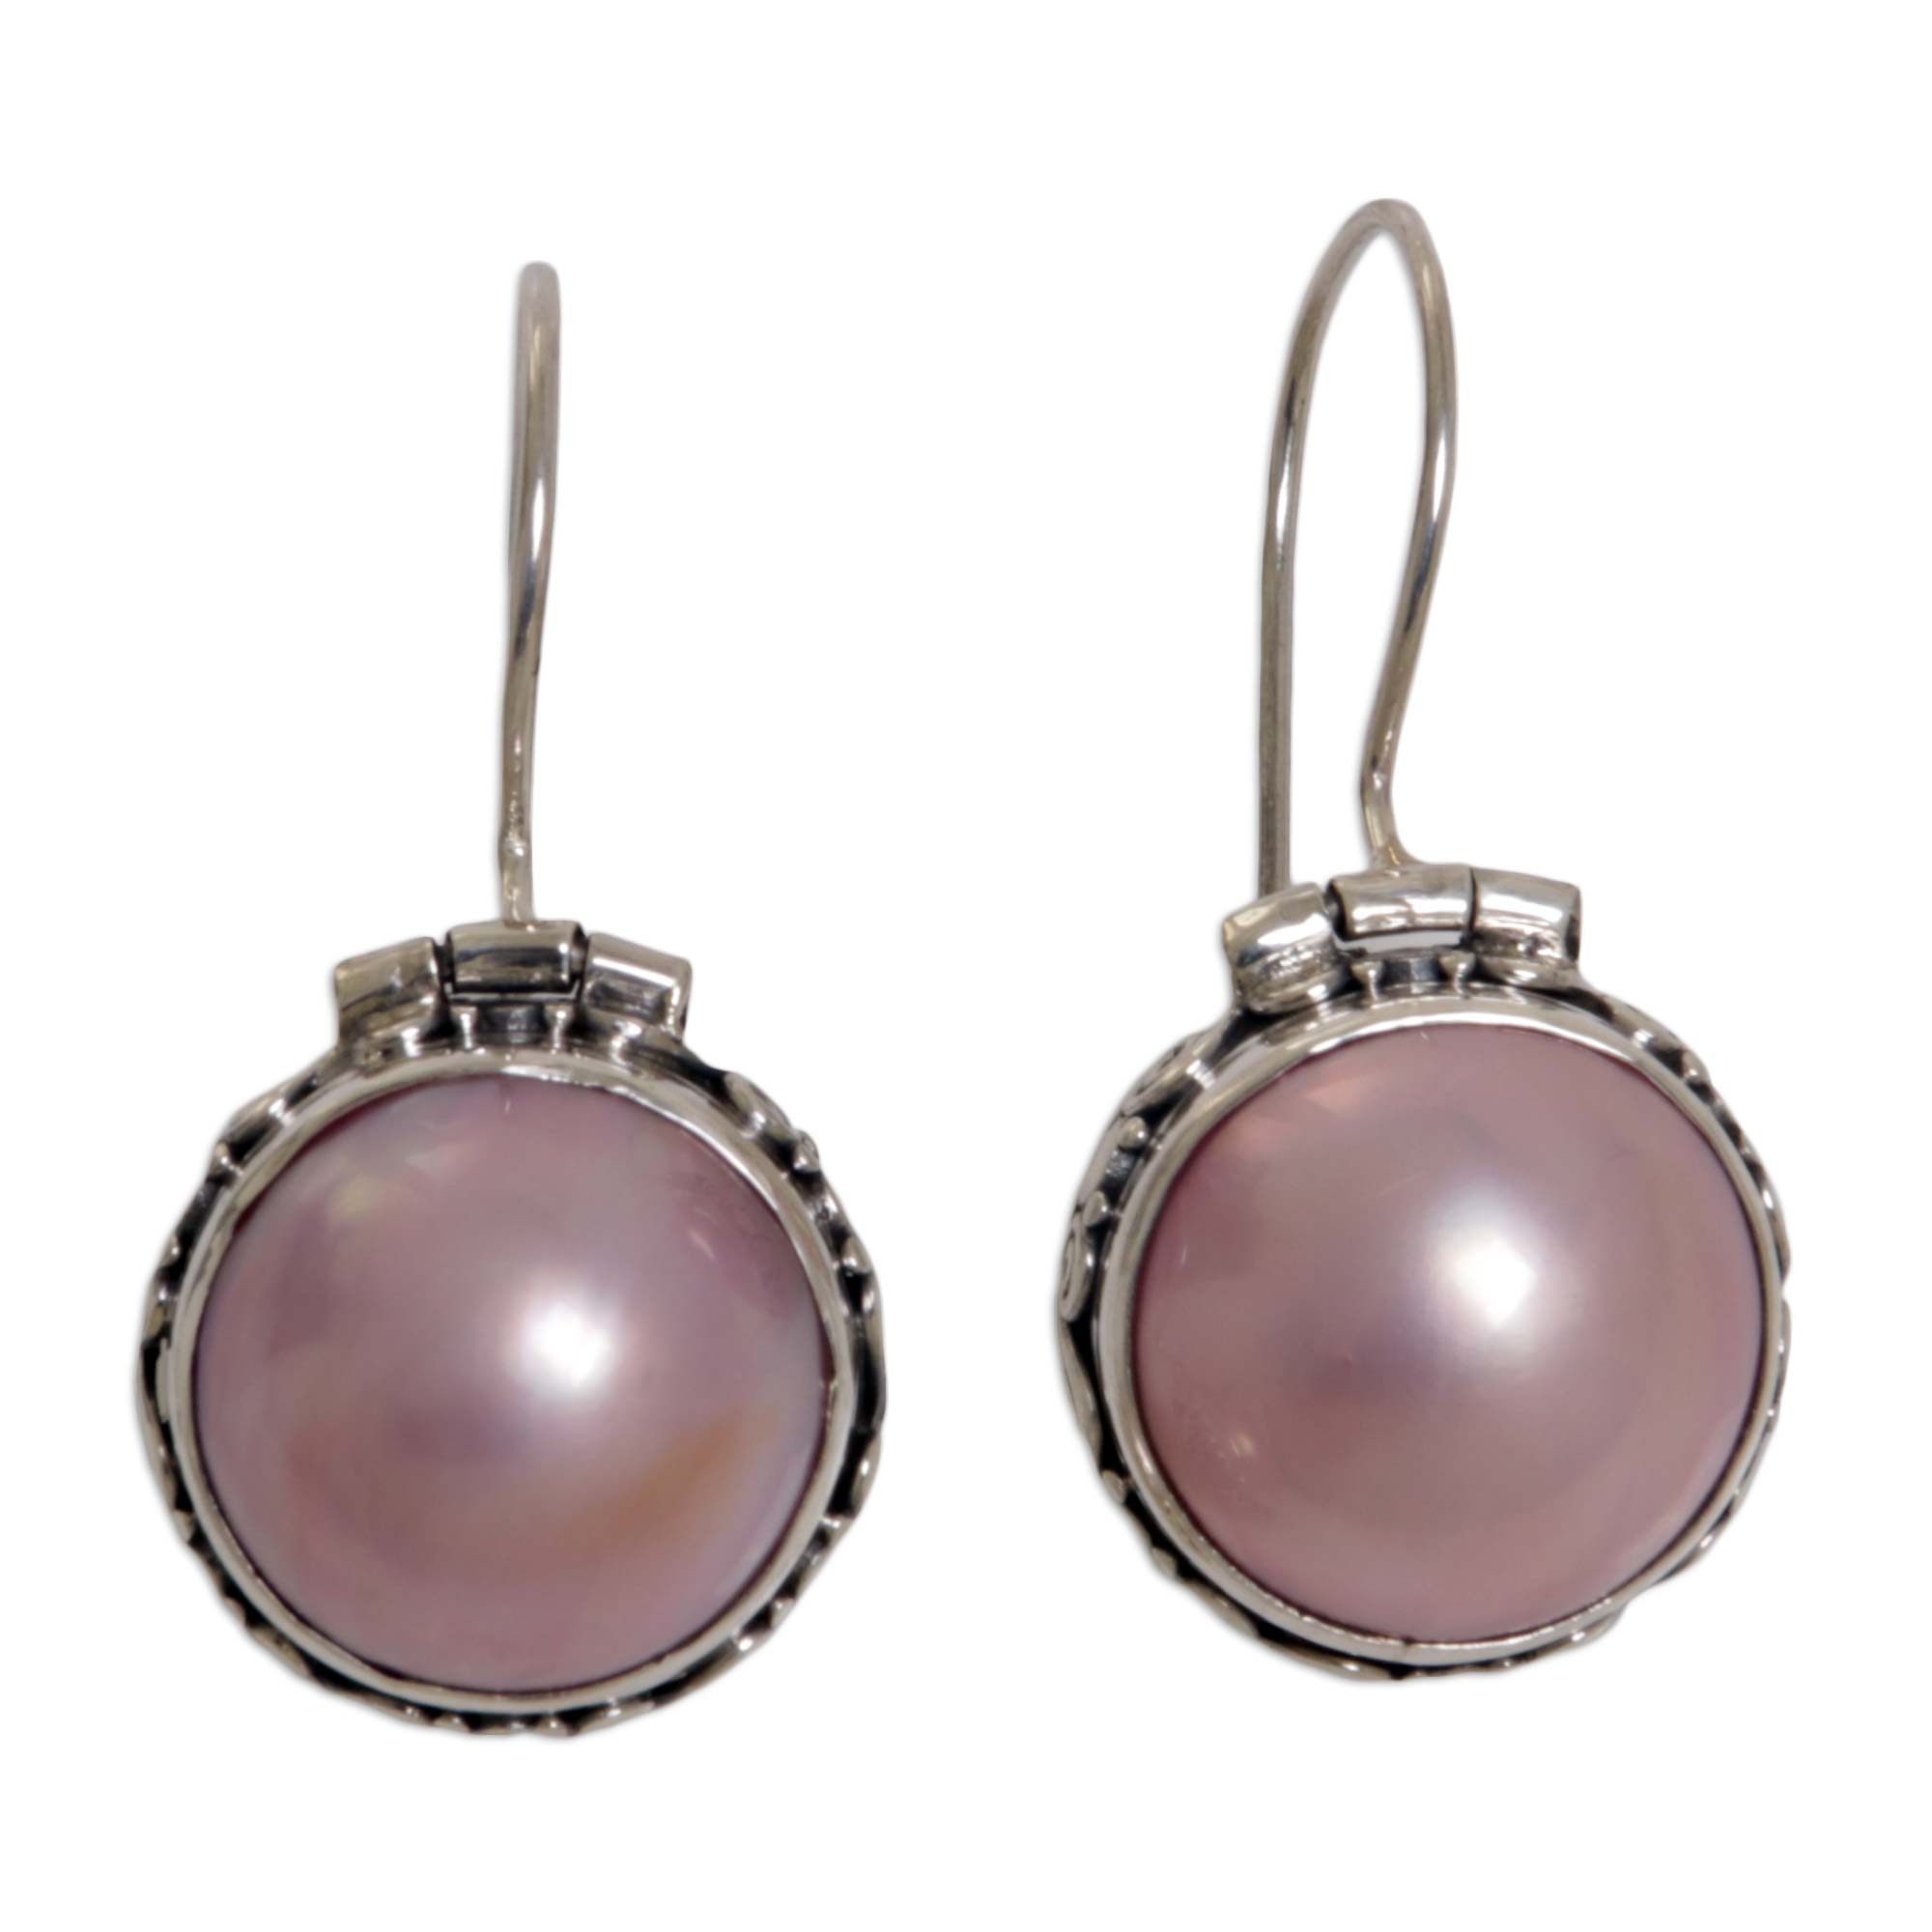 Indonesian Pearl And Sterling Silver Earrings Lavender Drop